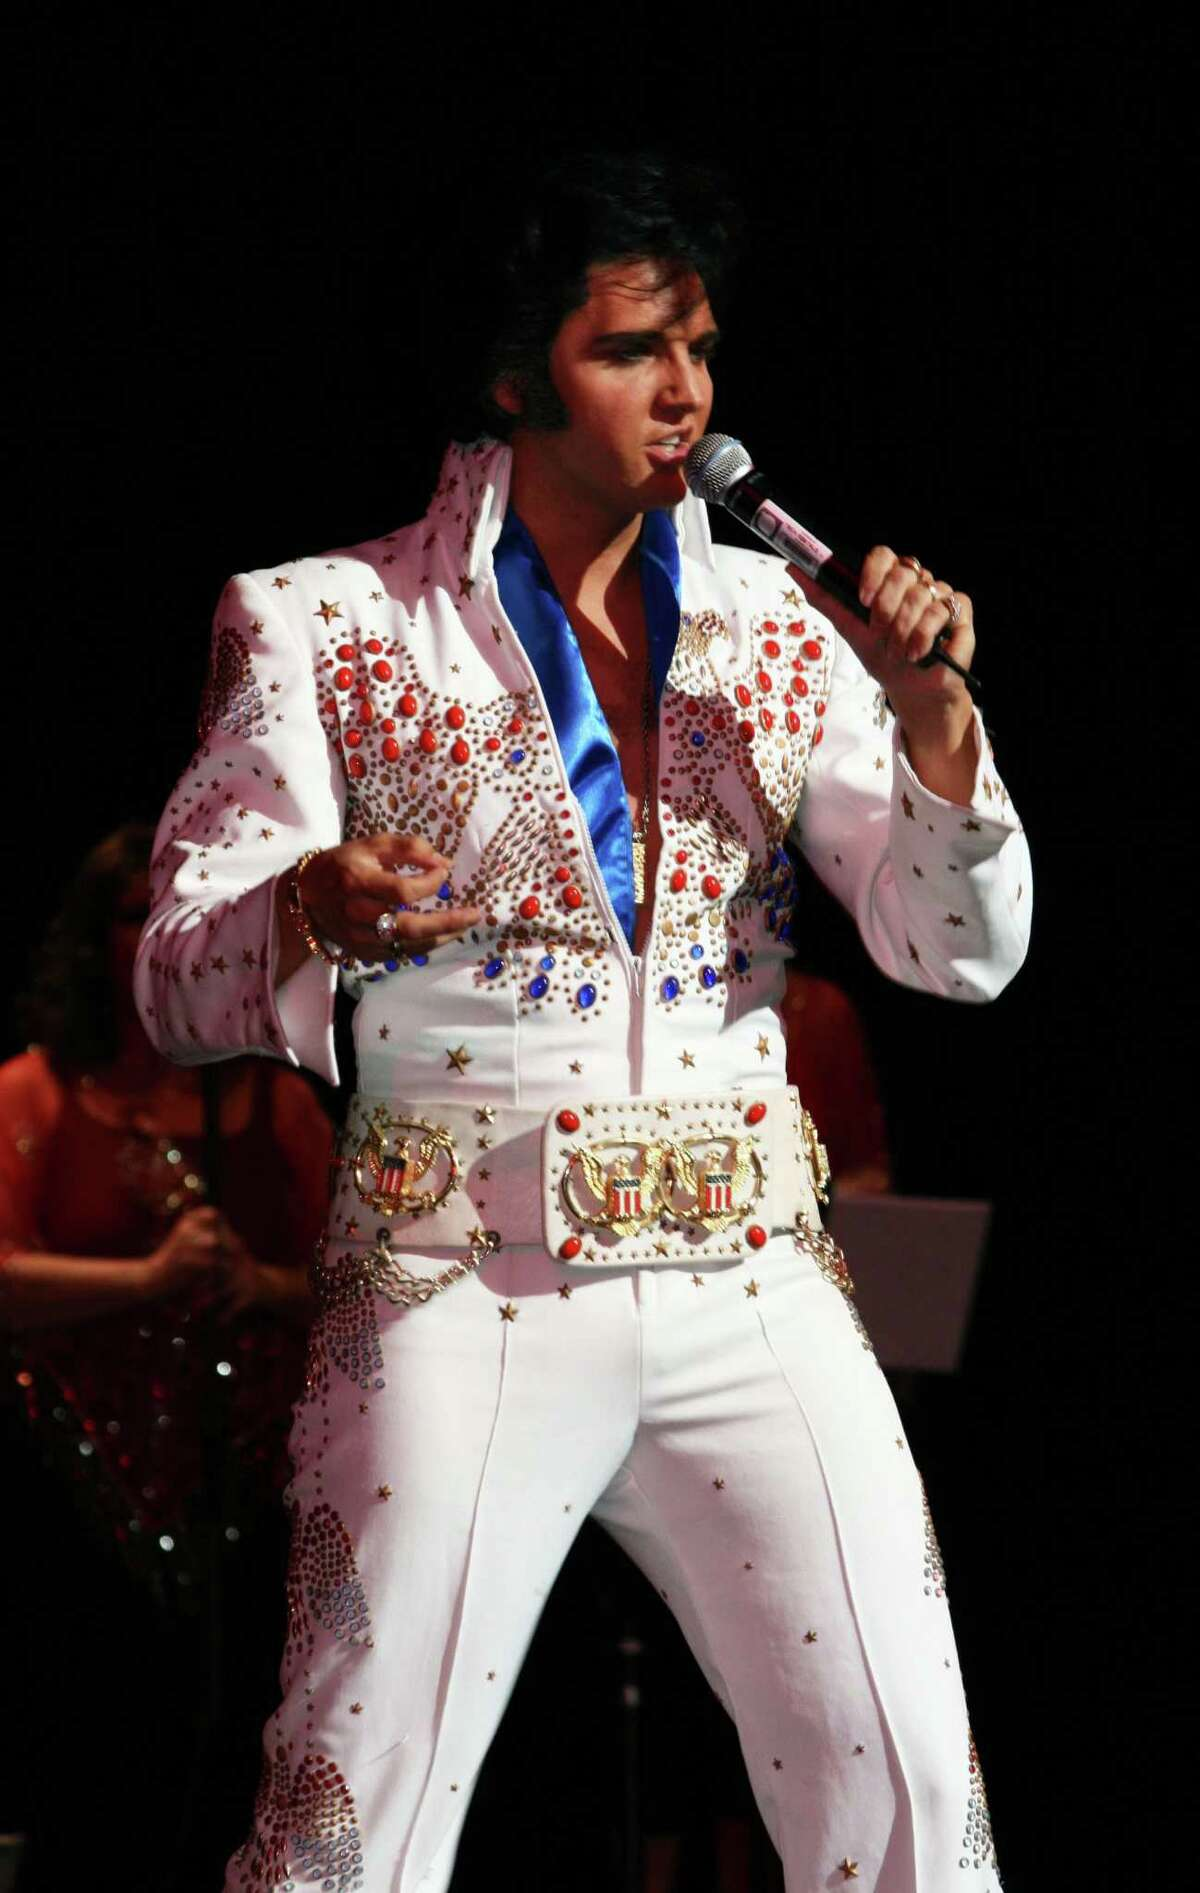 Elvis tribute artist Donny Edwards returns to the Crighton Theatre March 26-27. His original show was scheduled for March 2020 and has been rescheduled several times due to the pandemic. The show is now split into three shows Friday night, Saturday afternoon and Saturday night to allow for social distancing among the seats.